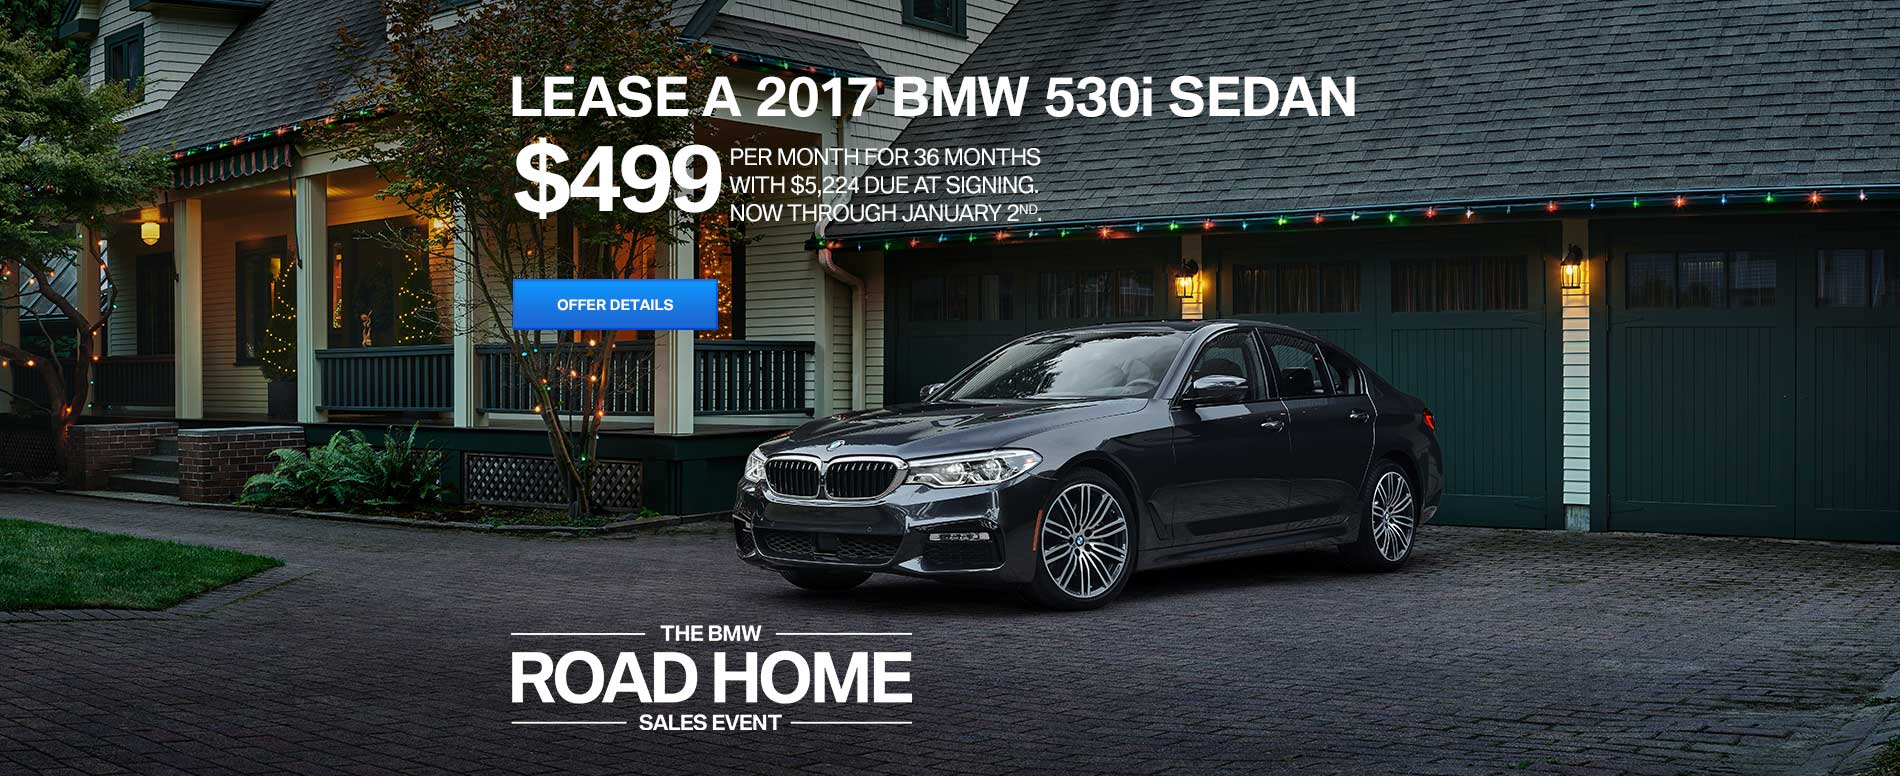 BMW Lease Offer